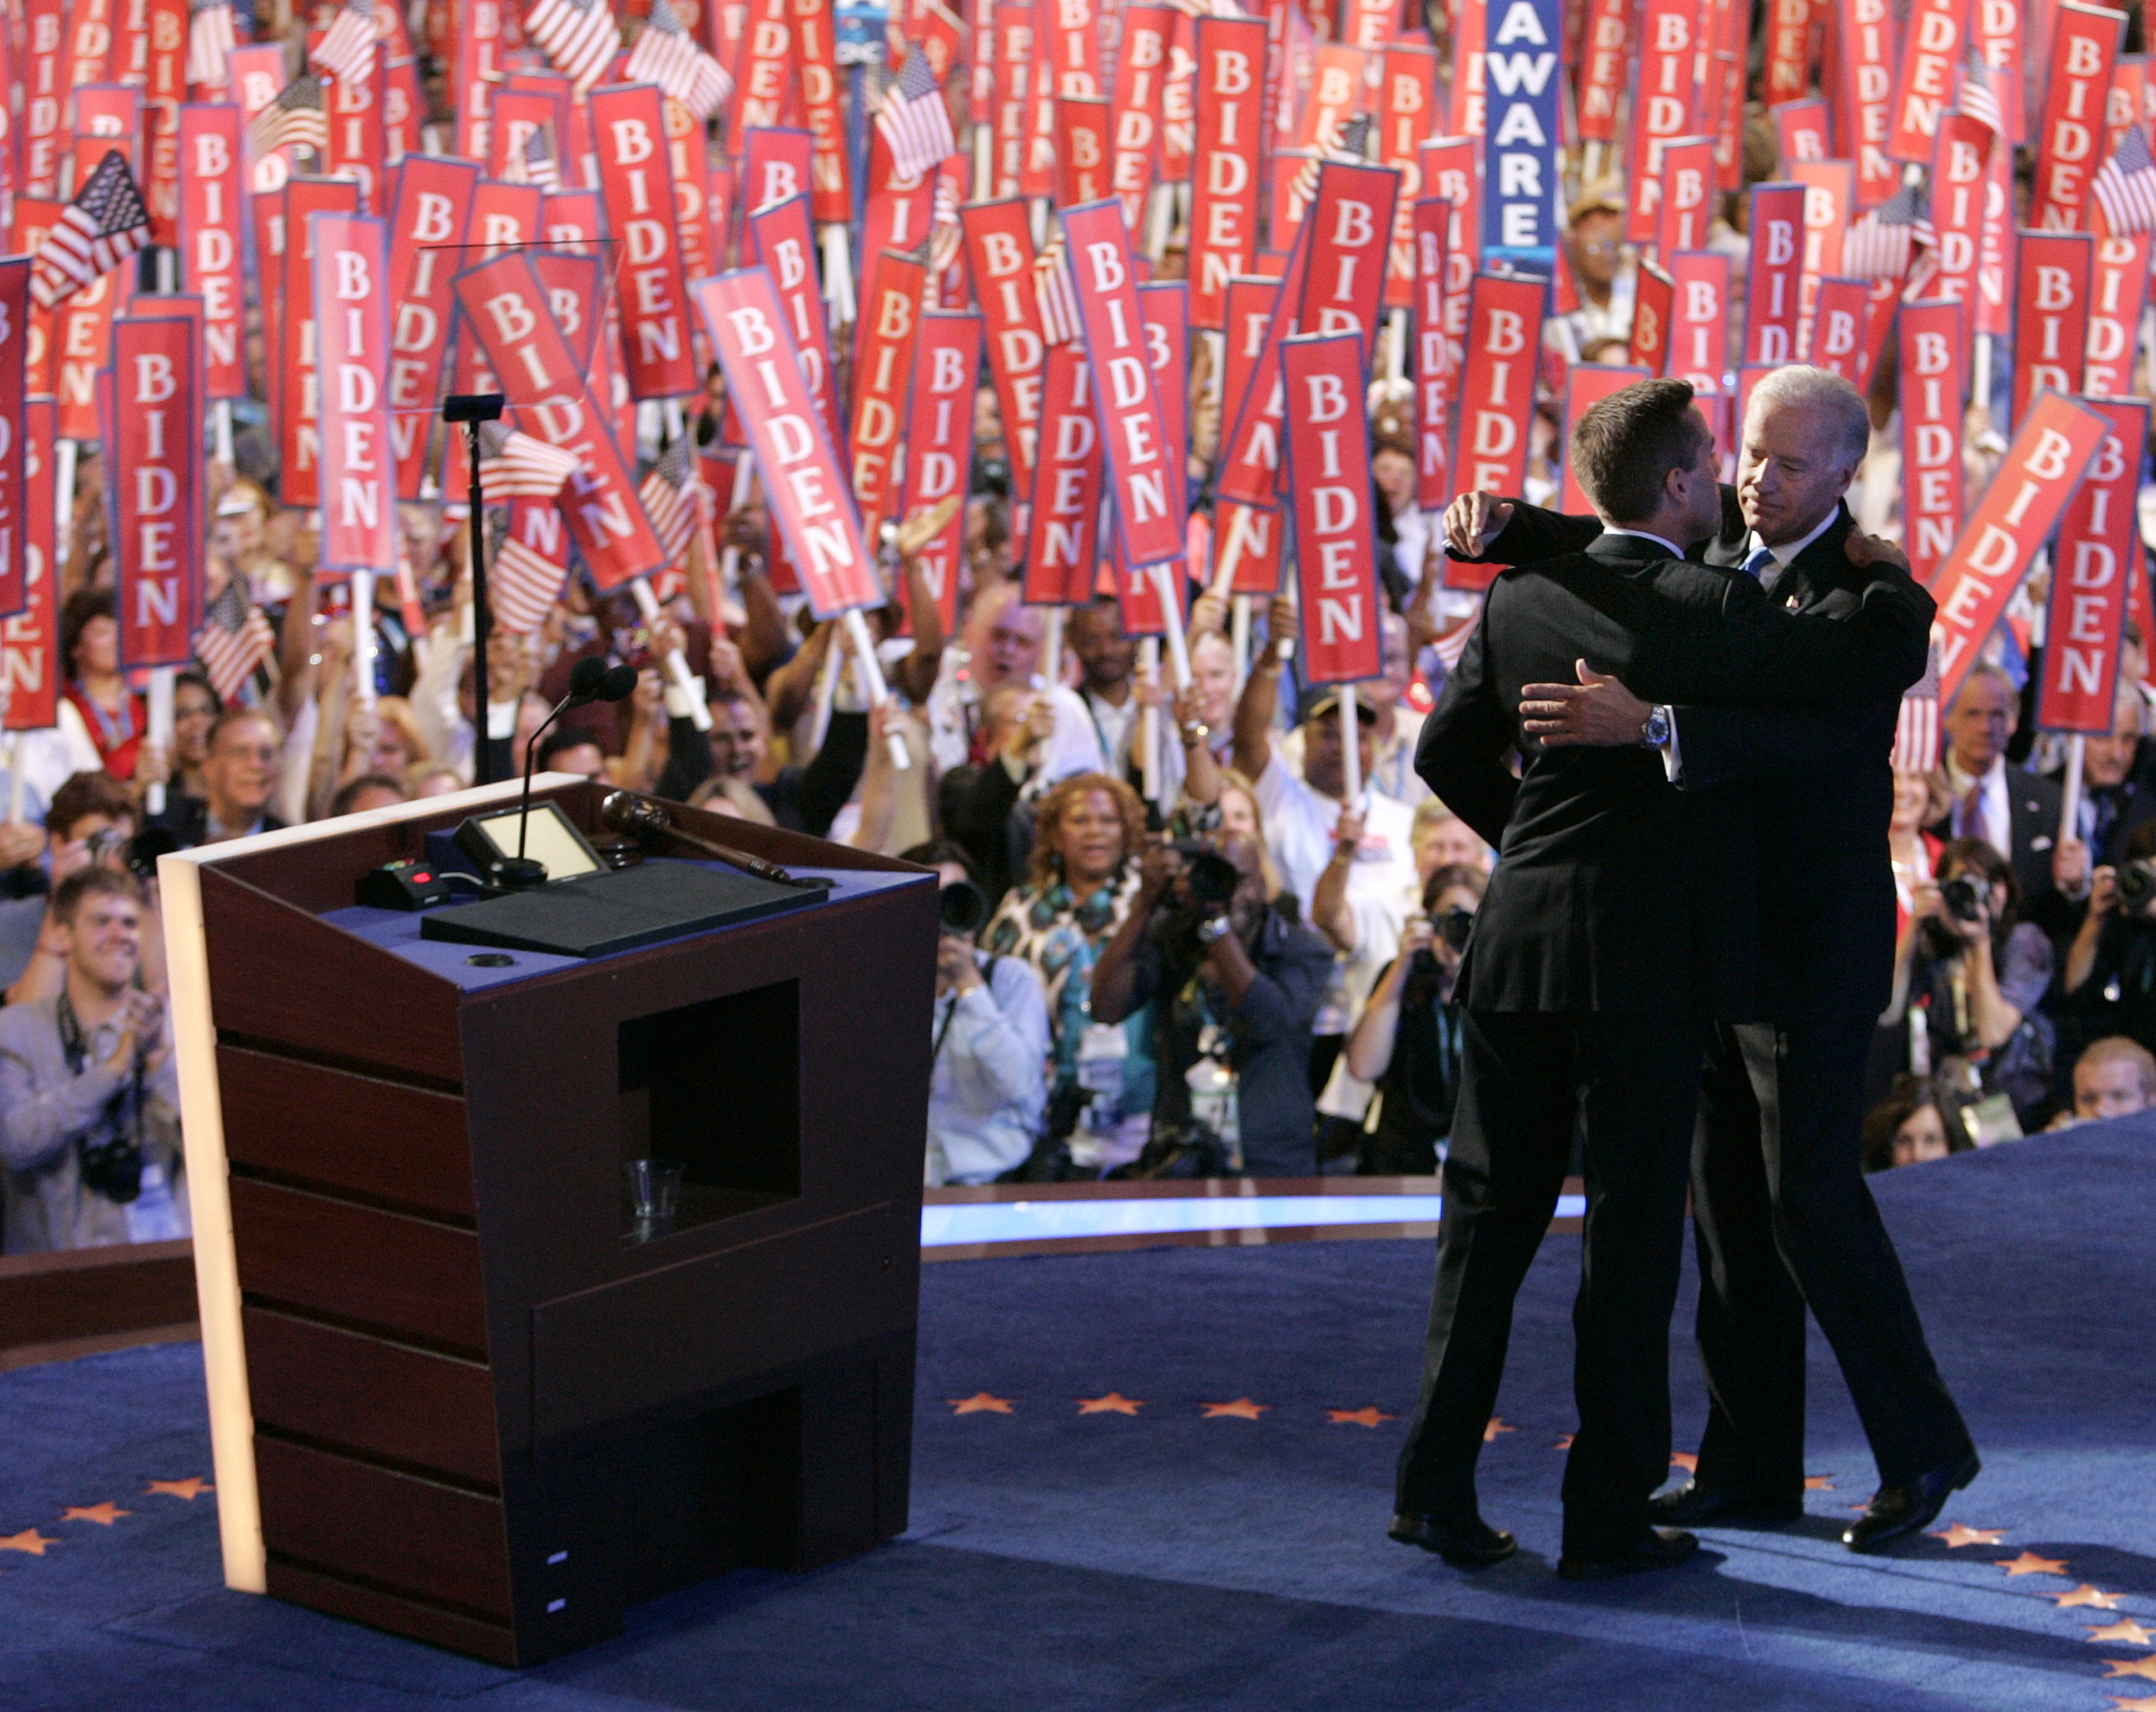 Then Senator Joe Biden embraces his son after his son introduced him at the 2008 Democratic National Convention in Denver, Colorado, August 27, 2008.